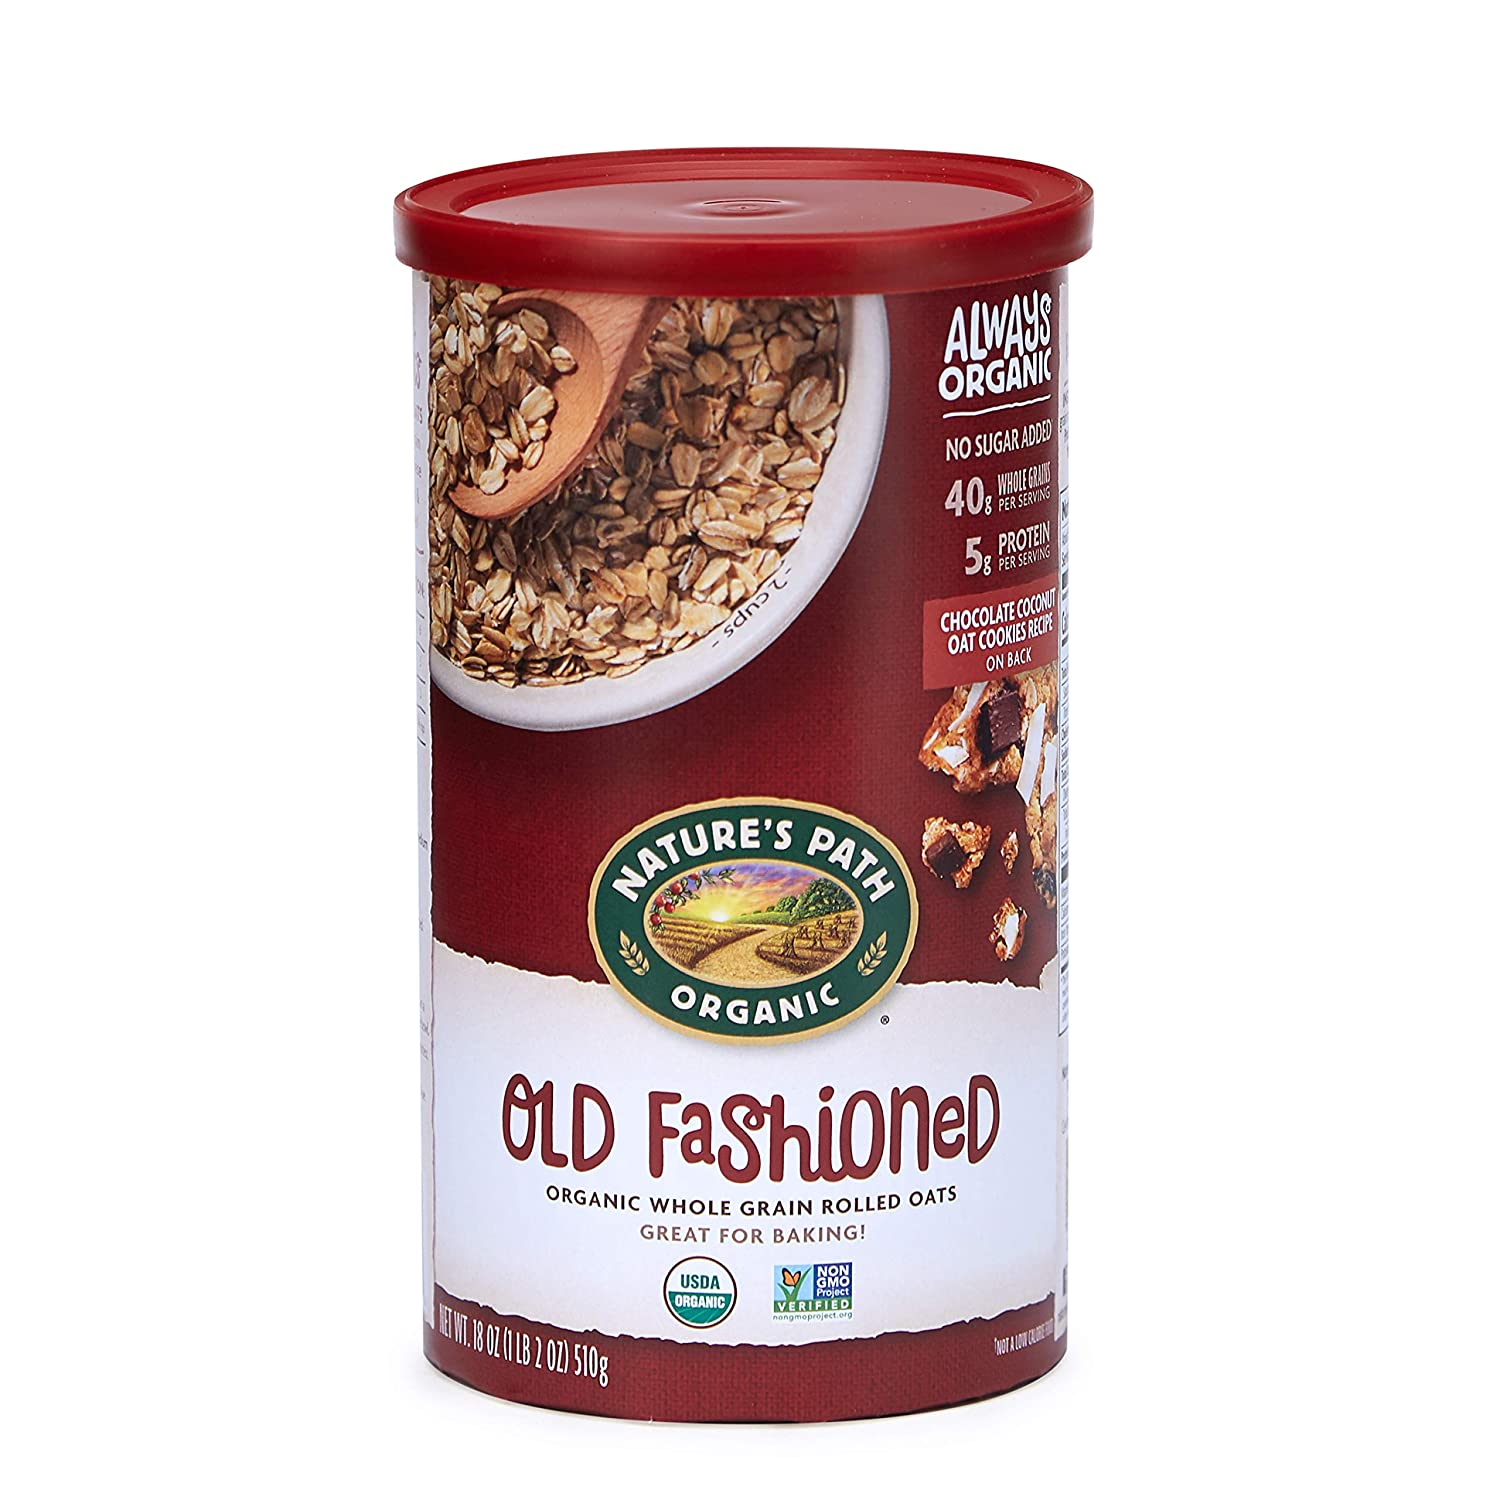 Nature's Path Max 74% OFF Organic Old Fashioned Oats Max 44% OFF Grain Rolled Whole